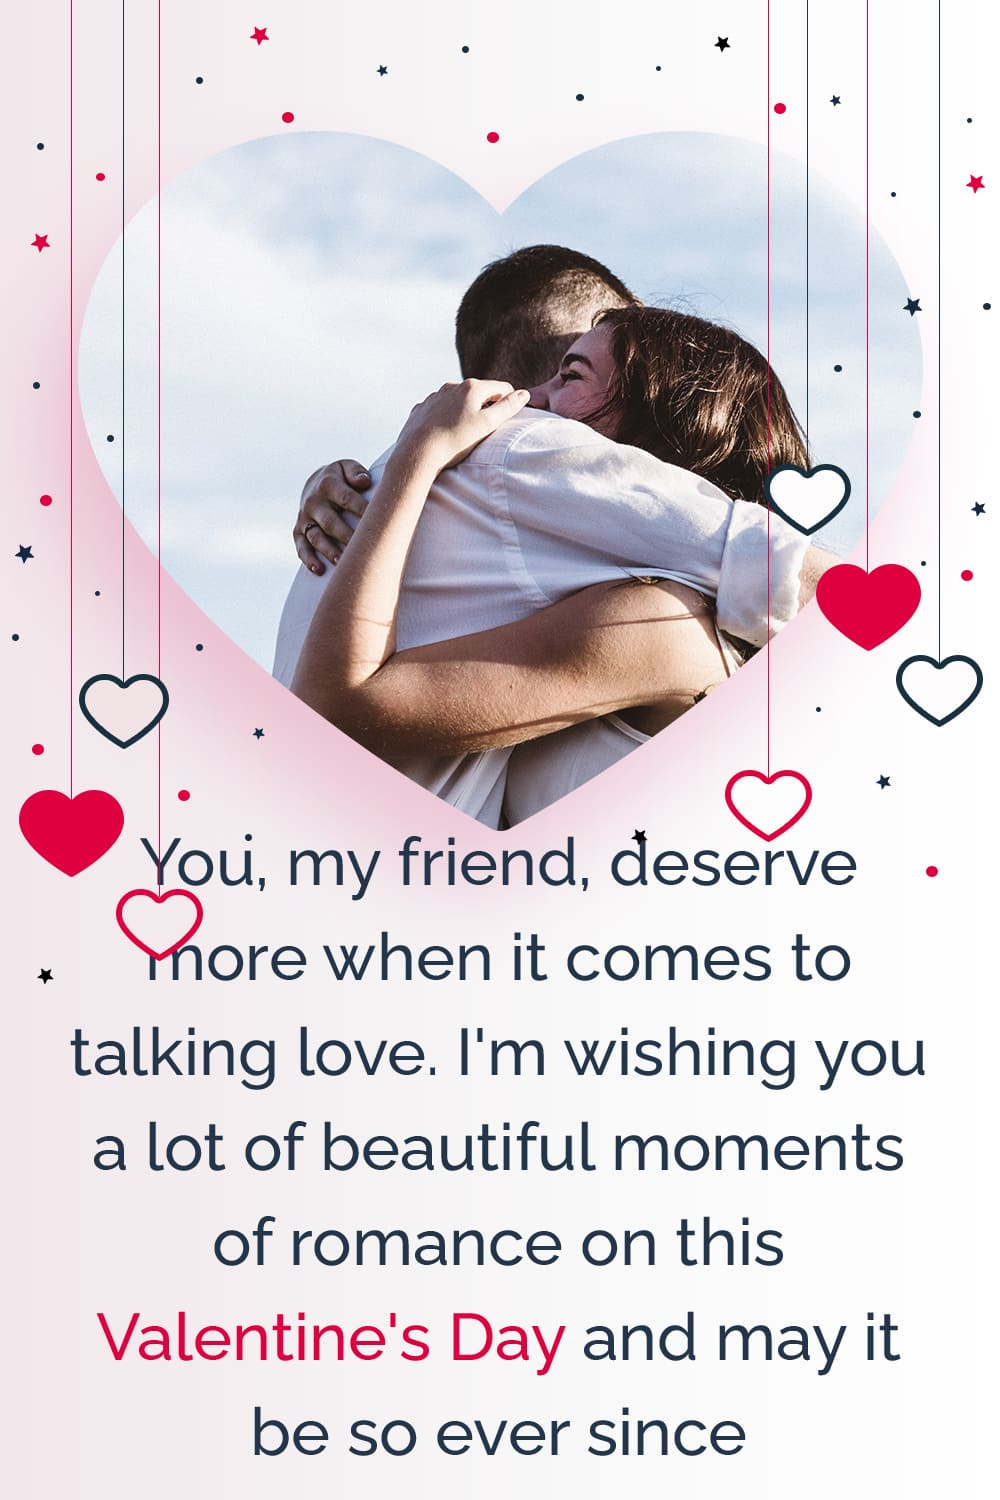 You, my friend, deserve more when it comes to talking love. I'm wishing you a lot of beautiful moments of romance on this Valentine's Day and may it be so ever since.